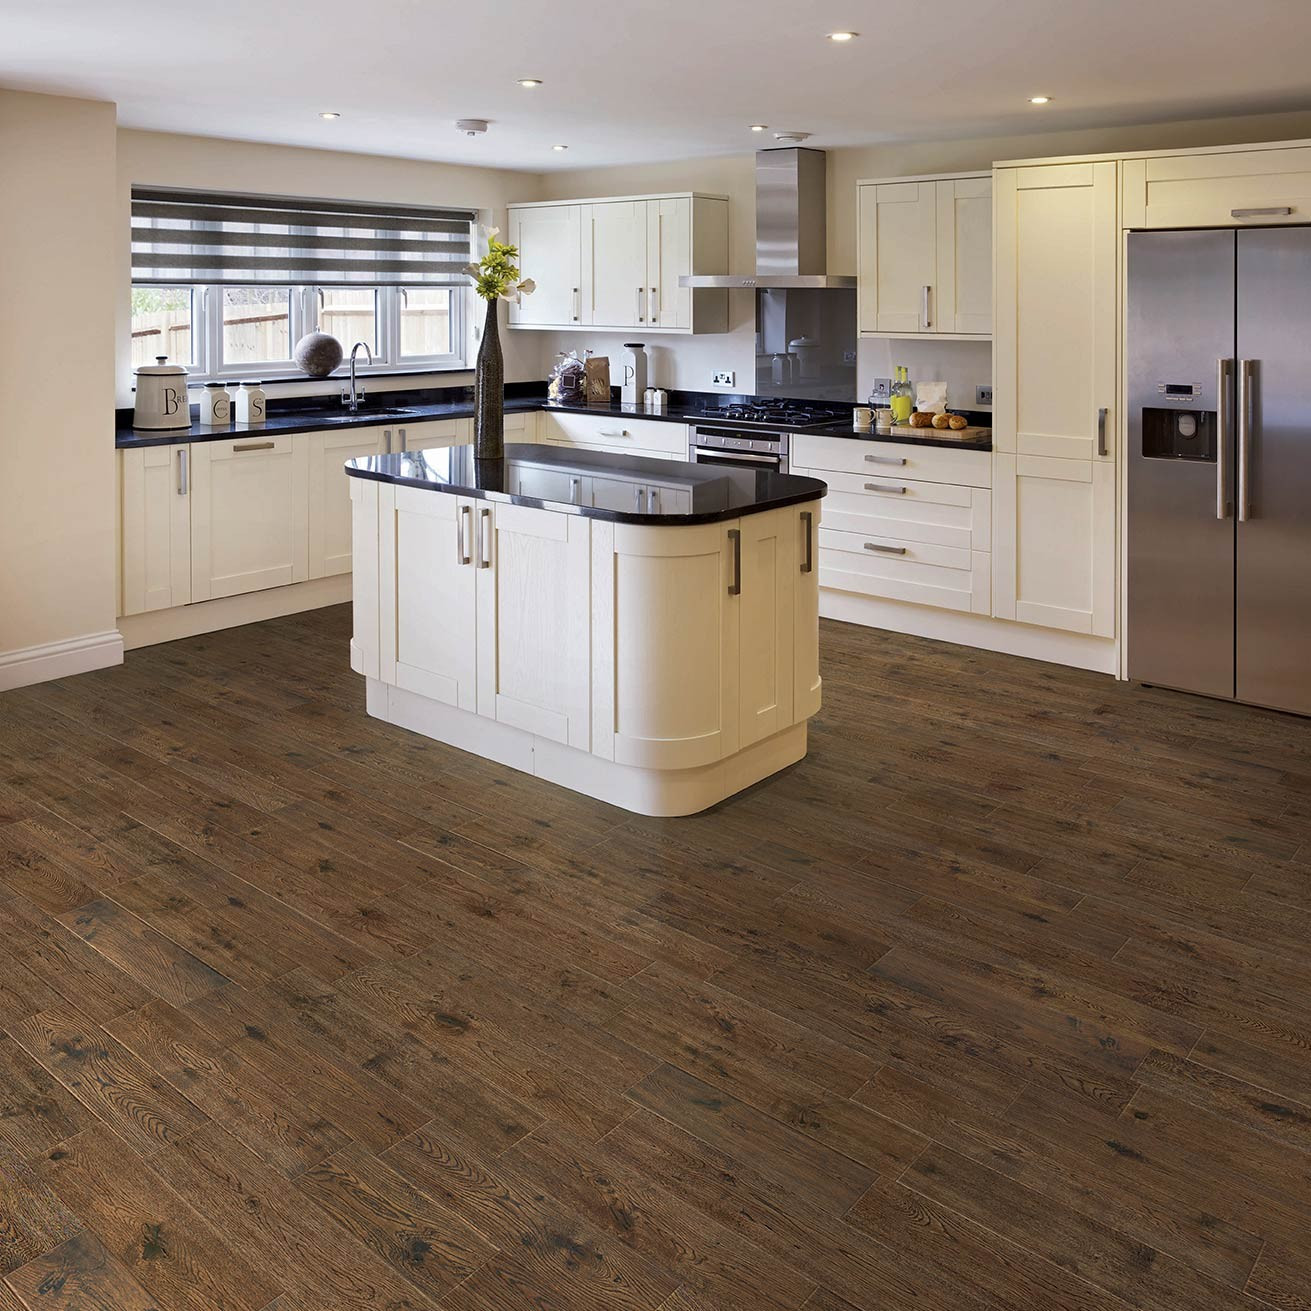 Halton Hickory Hardwood Flooring Of solid Hardwood Intended for Madeira Desert Rhythms